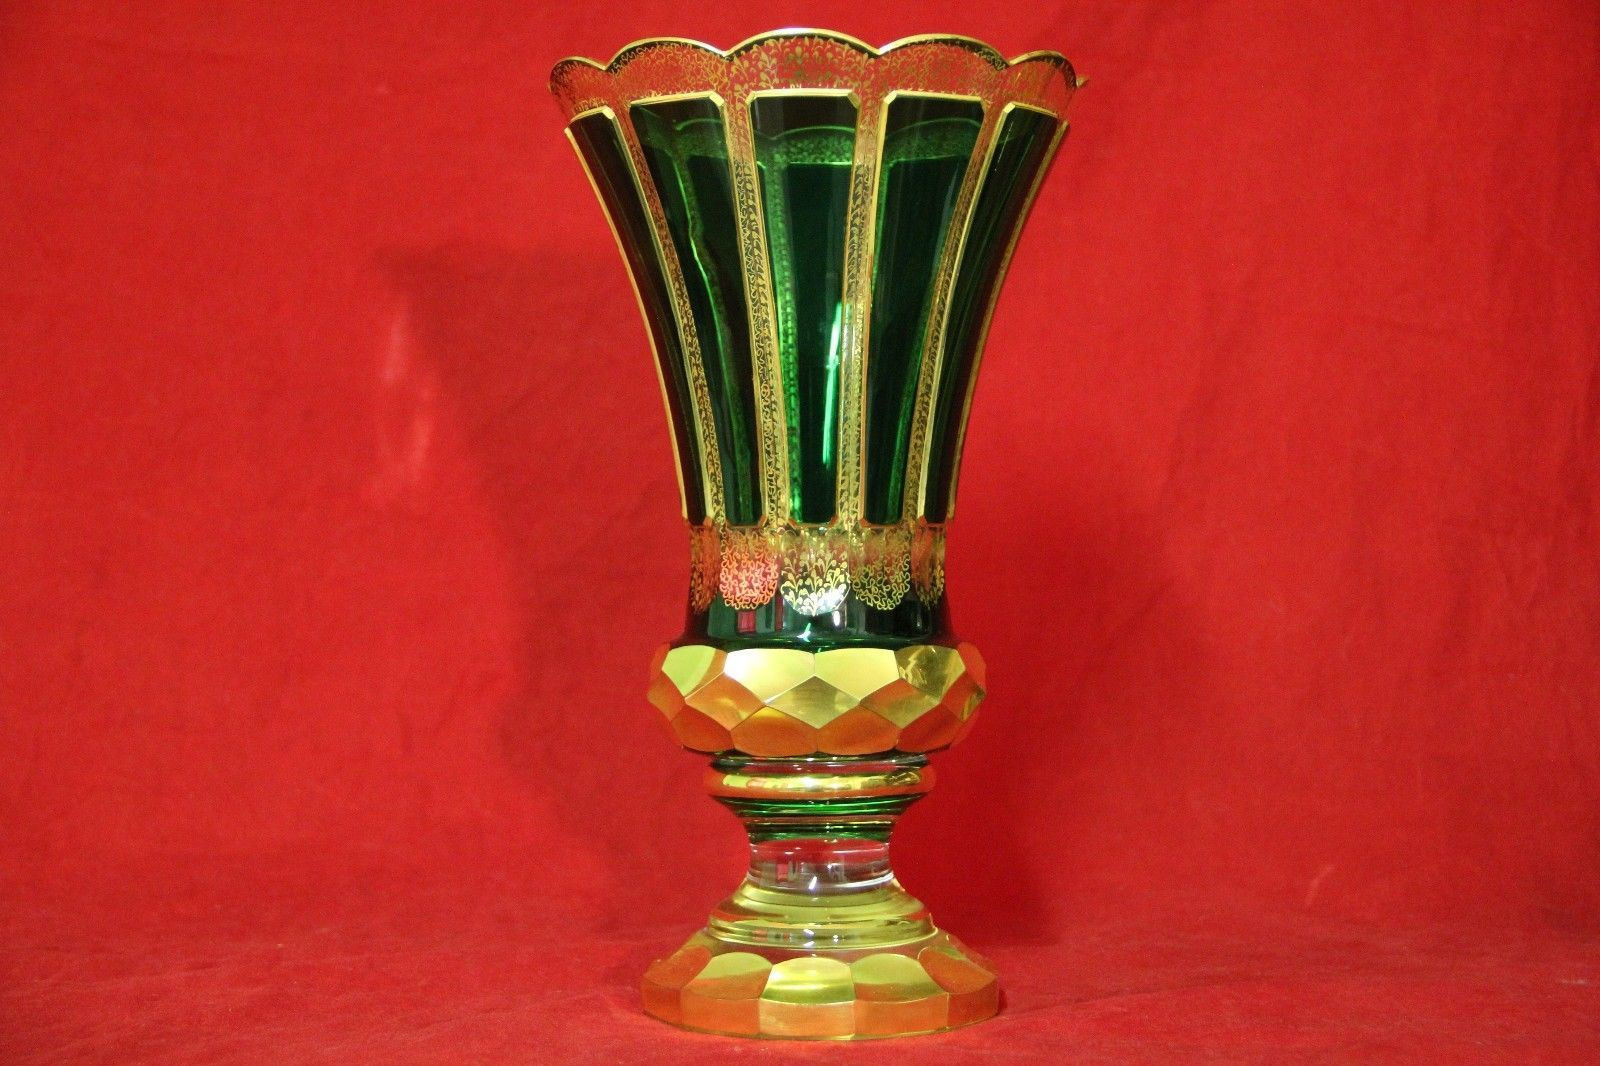 e o brody glass vase of emerald green vase pictures vintage e o brody ribbed emerald green regarding emerald green vase image extraordinary antique 20th century emerald green moser glass vase of emerald green